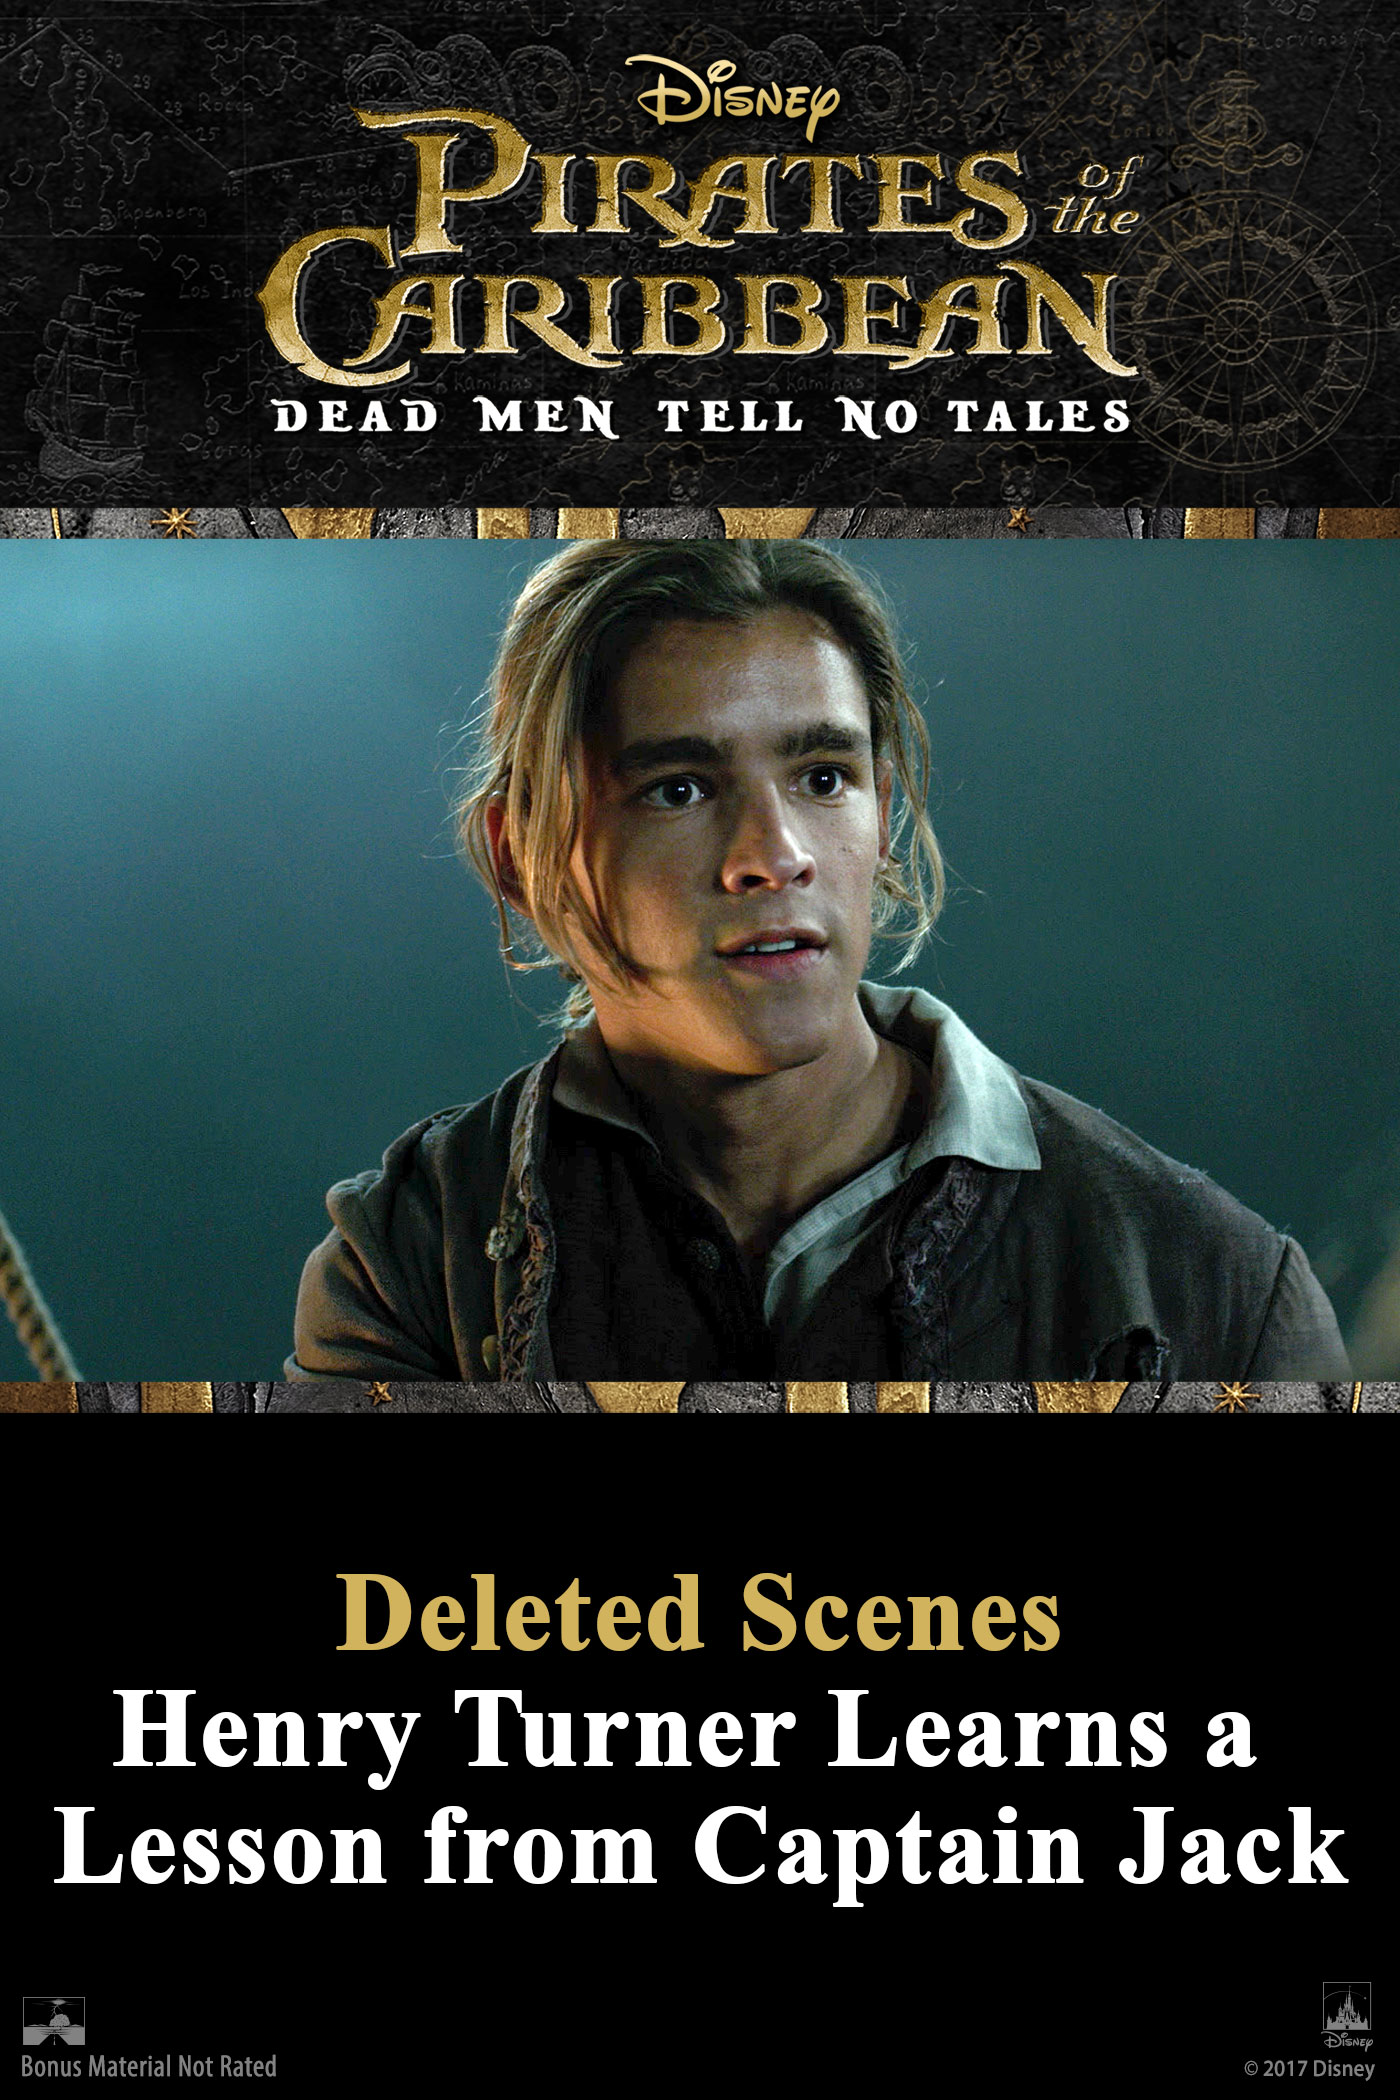 Deleted Scene - Henry Turner Learns a Lesson from Captain Jack